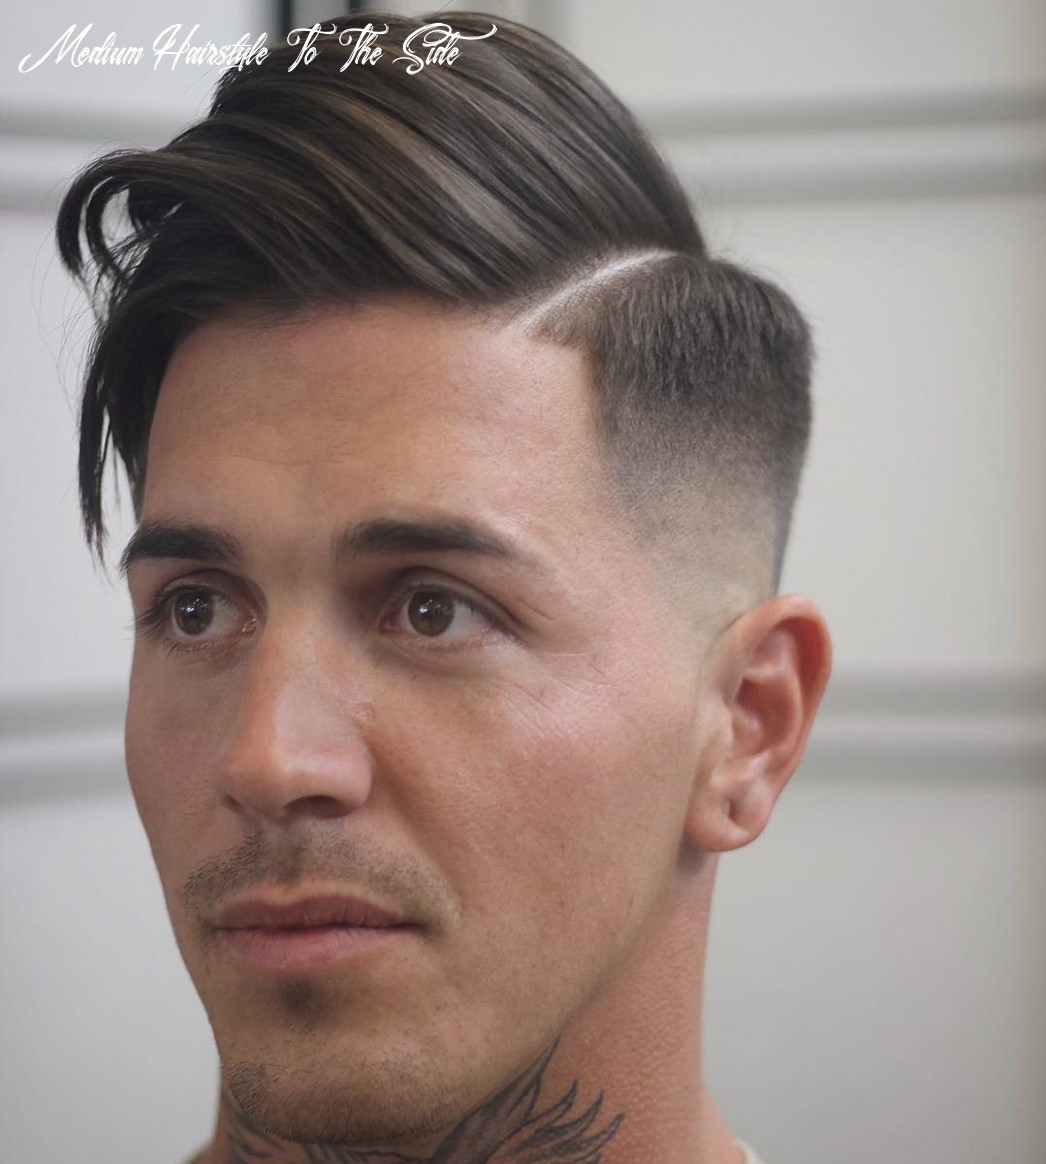 12 medium hairstyles for men (cool 12 styles) medium hairstyle to the side